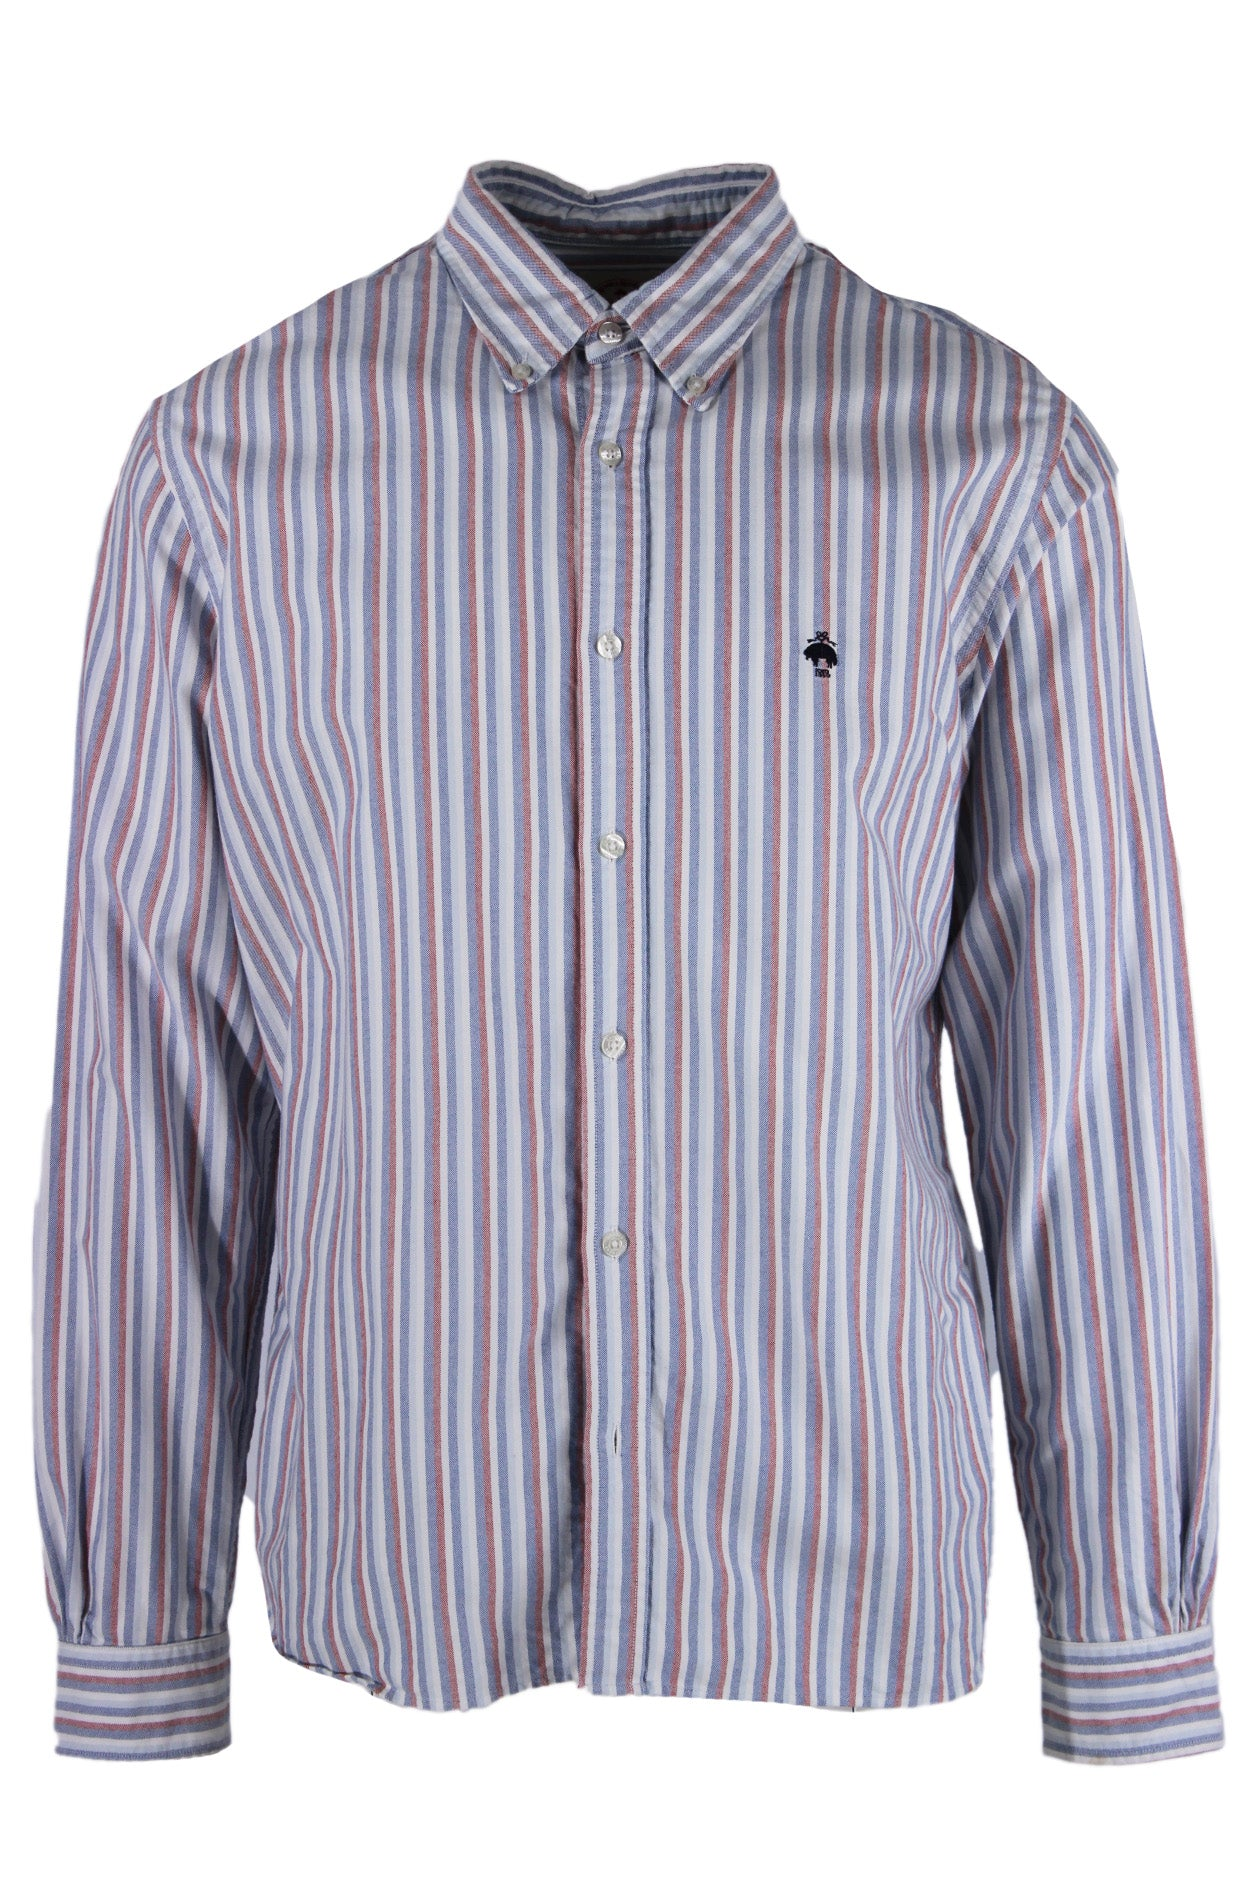 brooks brothers red fleece multicolored striped button down shirt. features multicolor striped exterior, long sleeves and exposed white iridescent button closures.